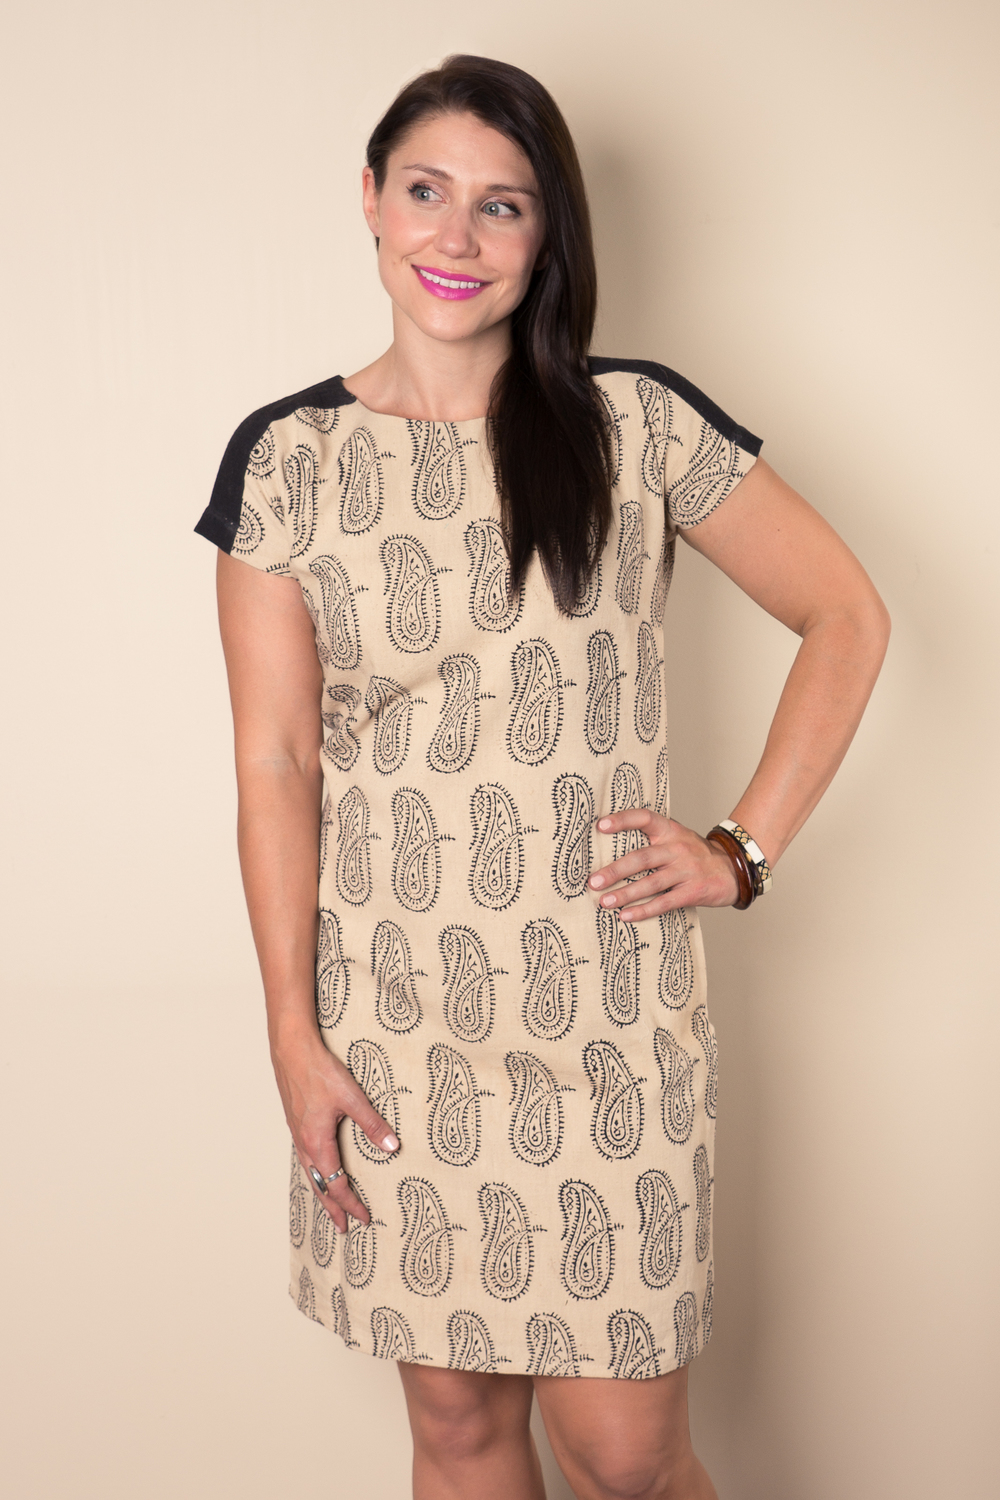 REVIVAL Style's ambi kala shift dress